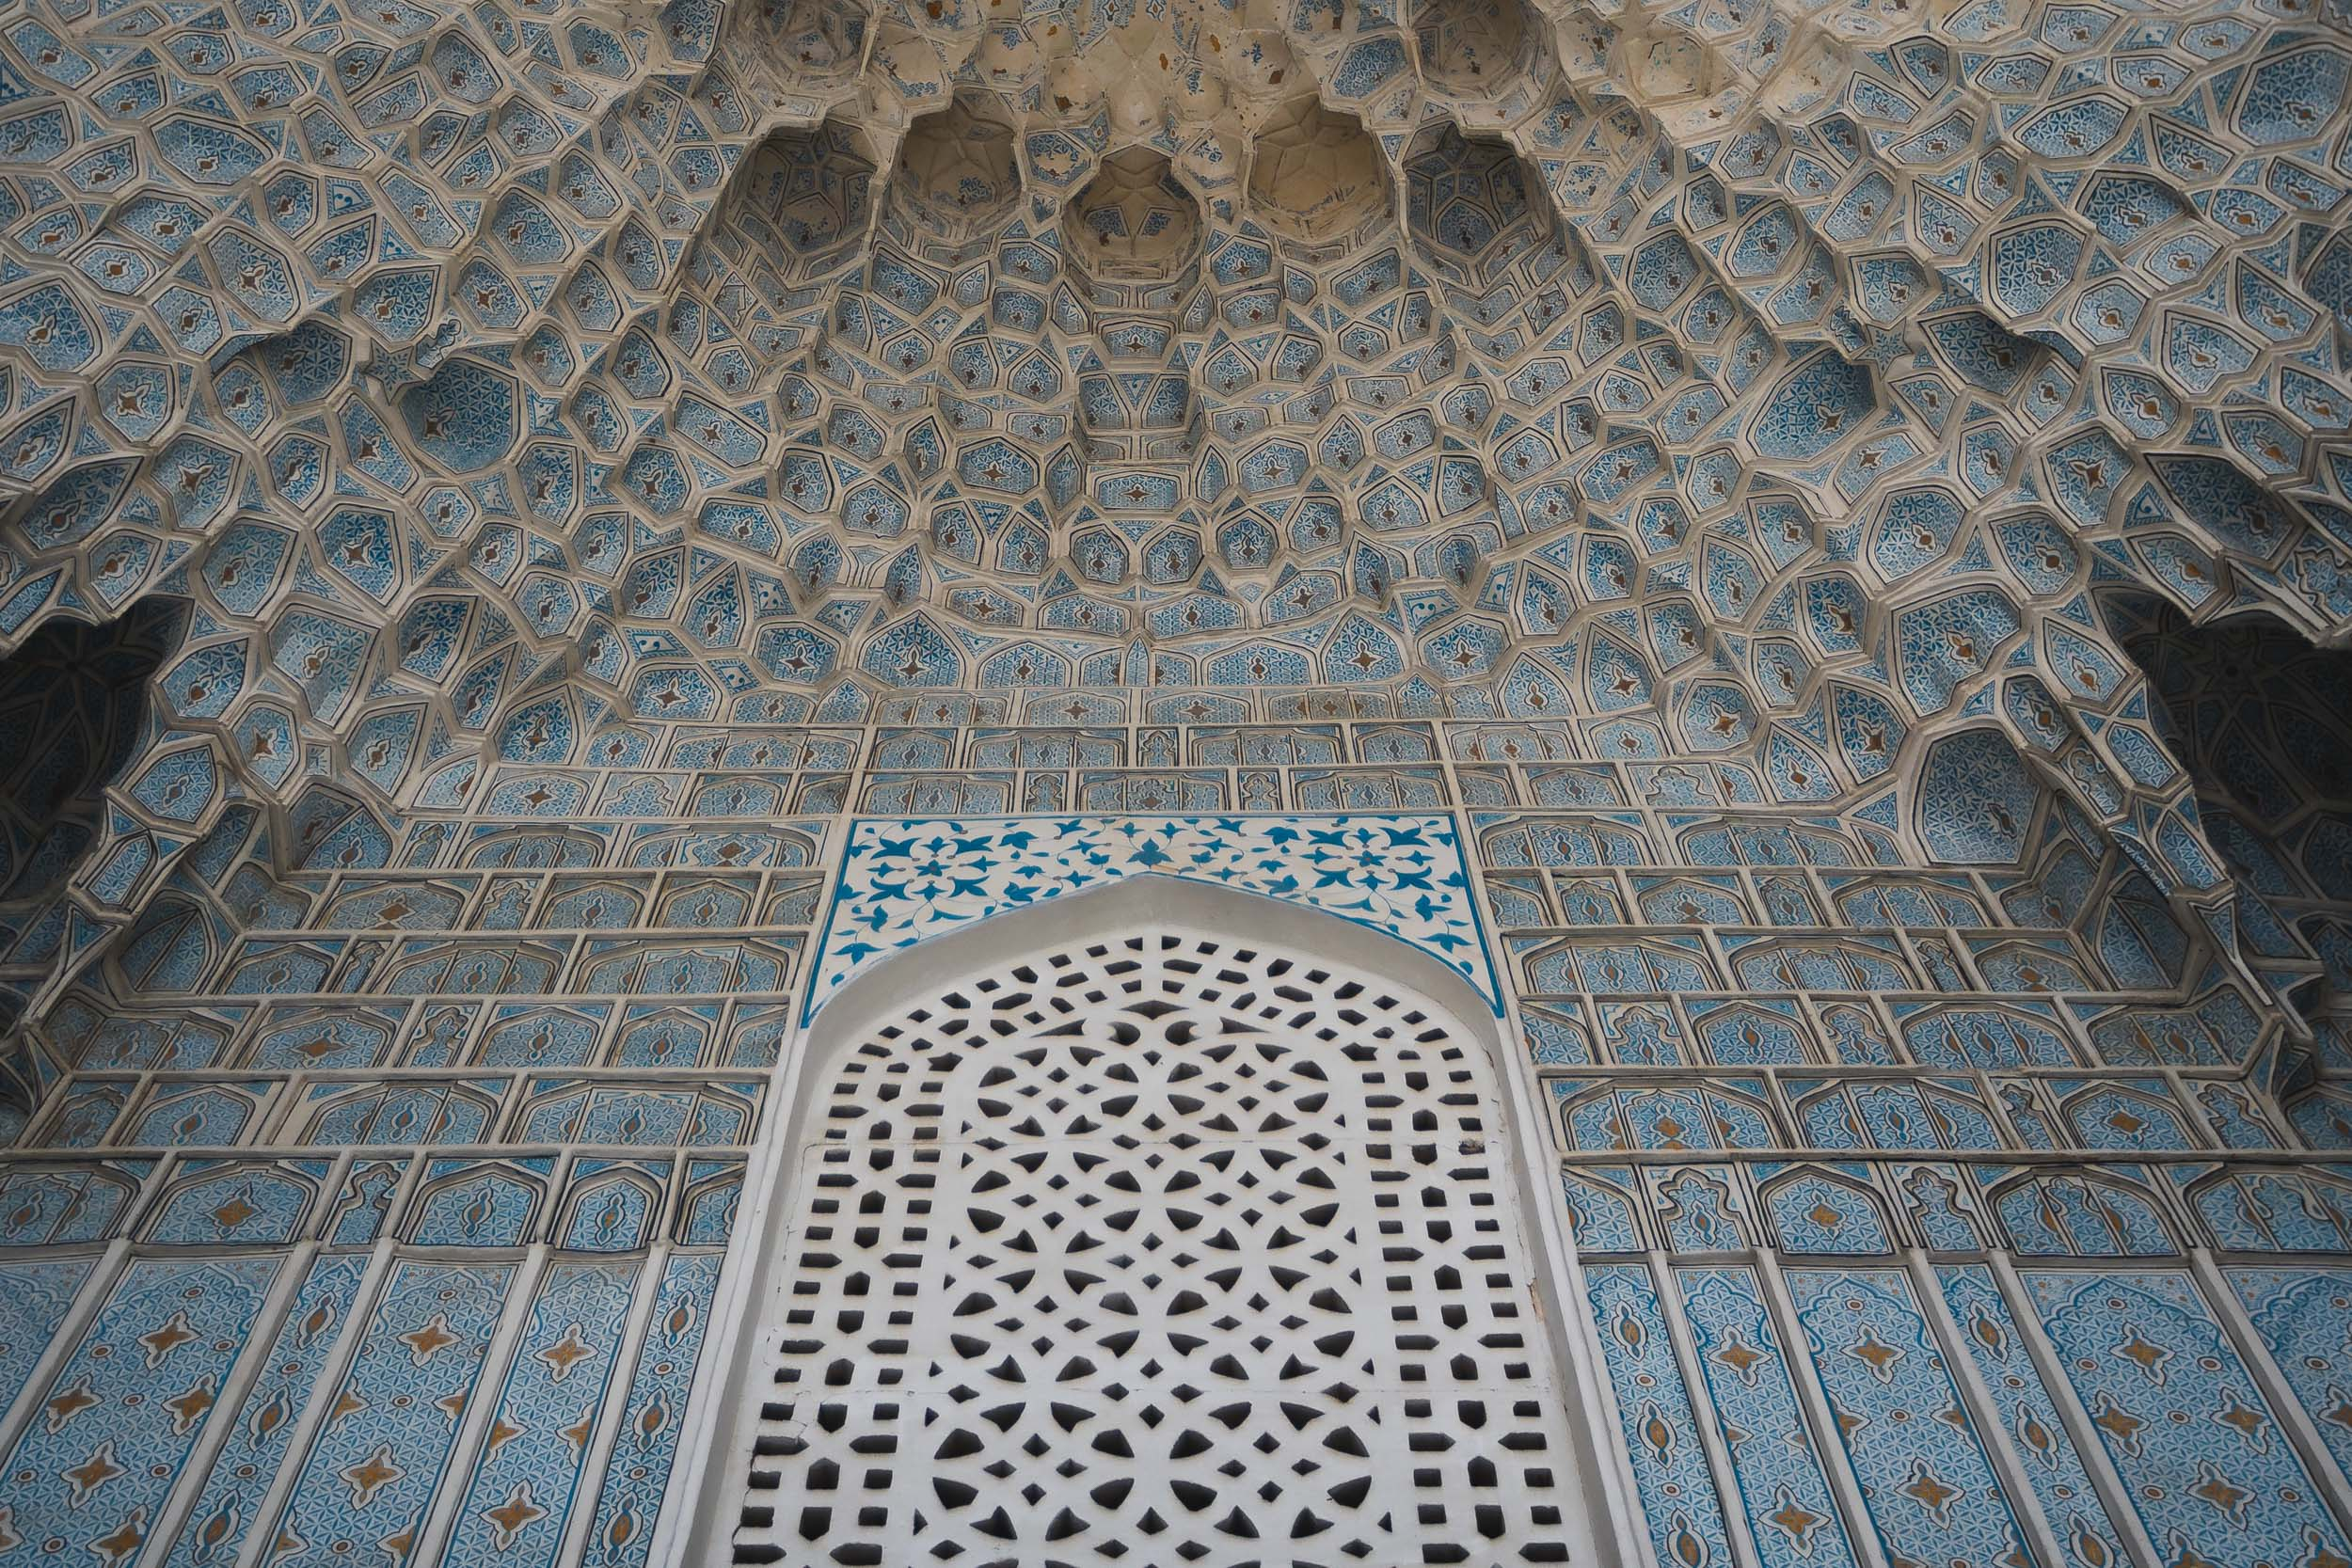 Patterns of Samarkand